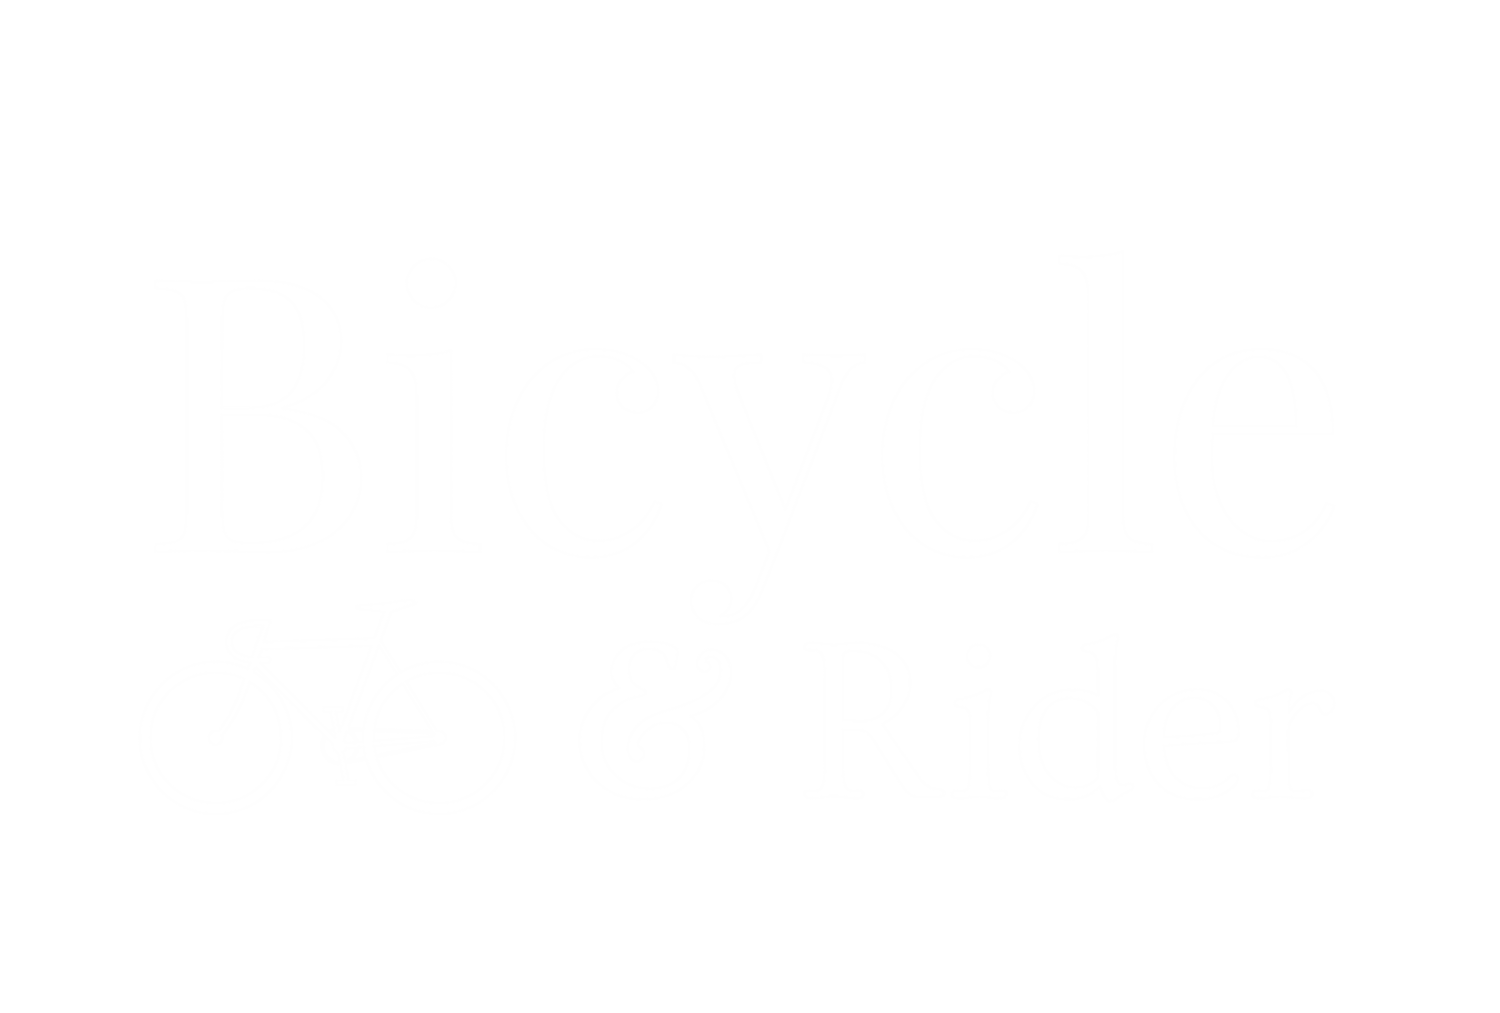 Bicycle and Rider